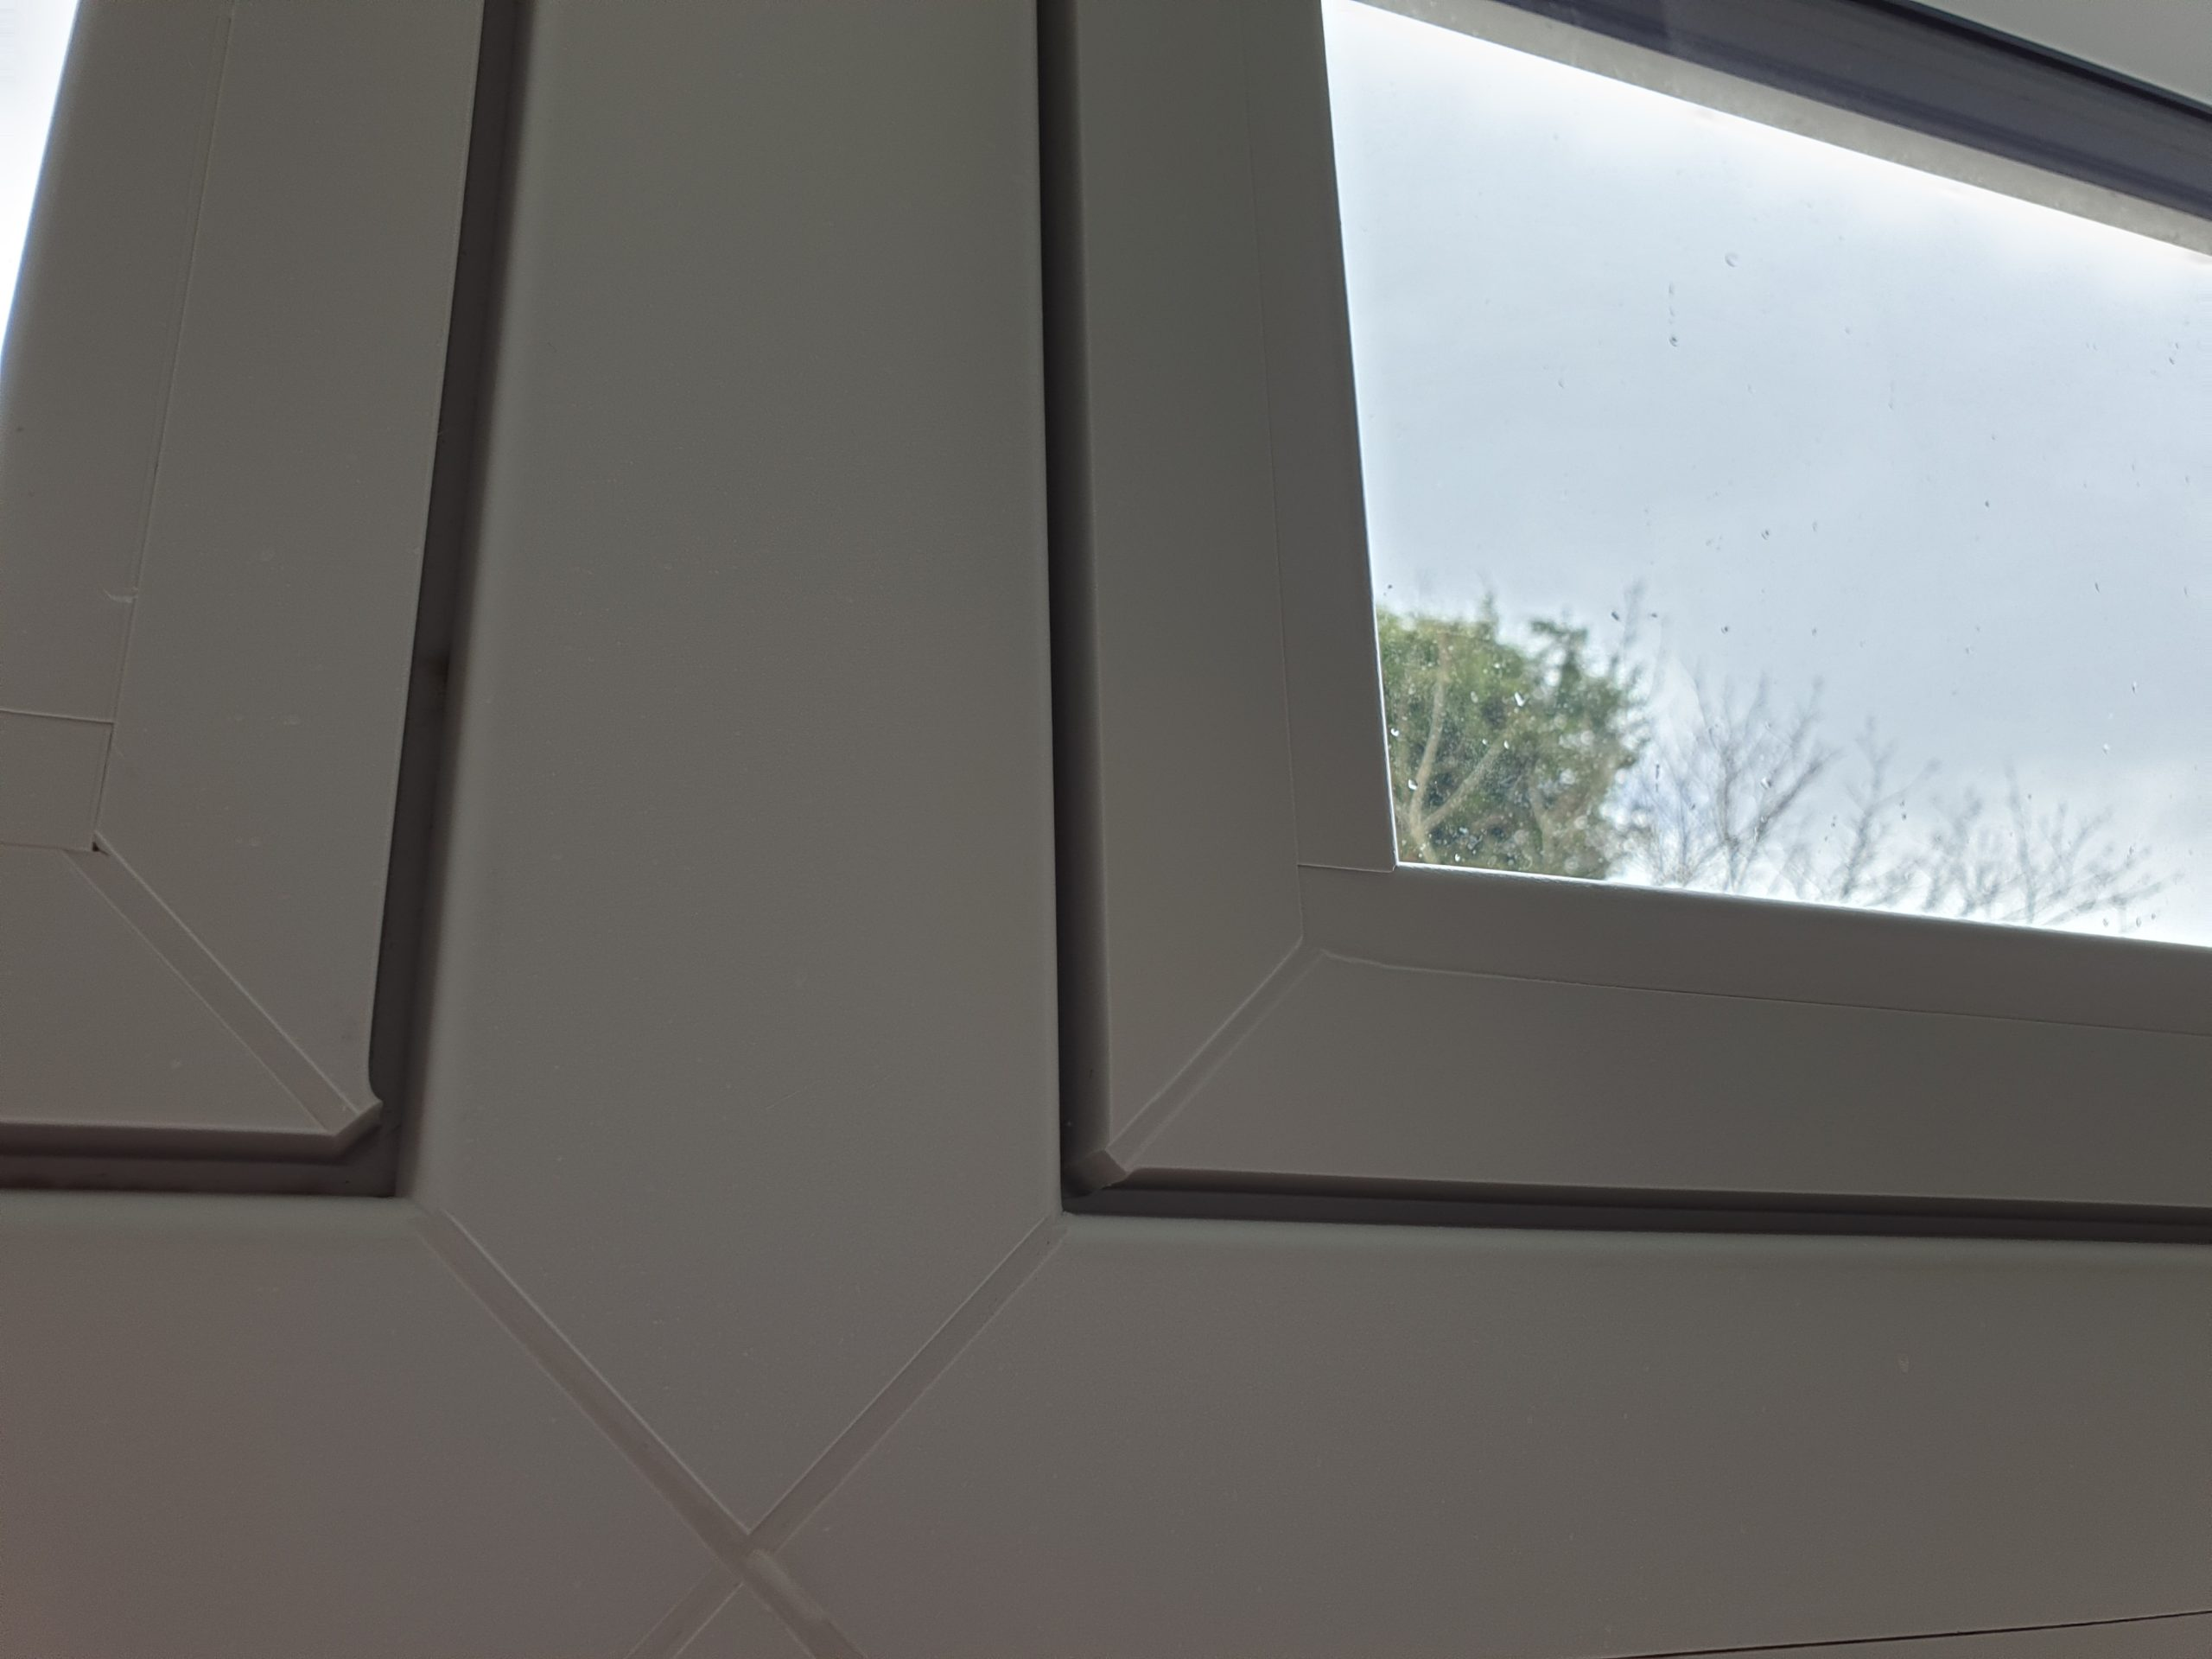 CRACKED UPVC PLASTIC WINDOW FRAME JOINT REPAIR AFTER